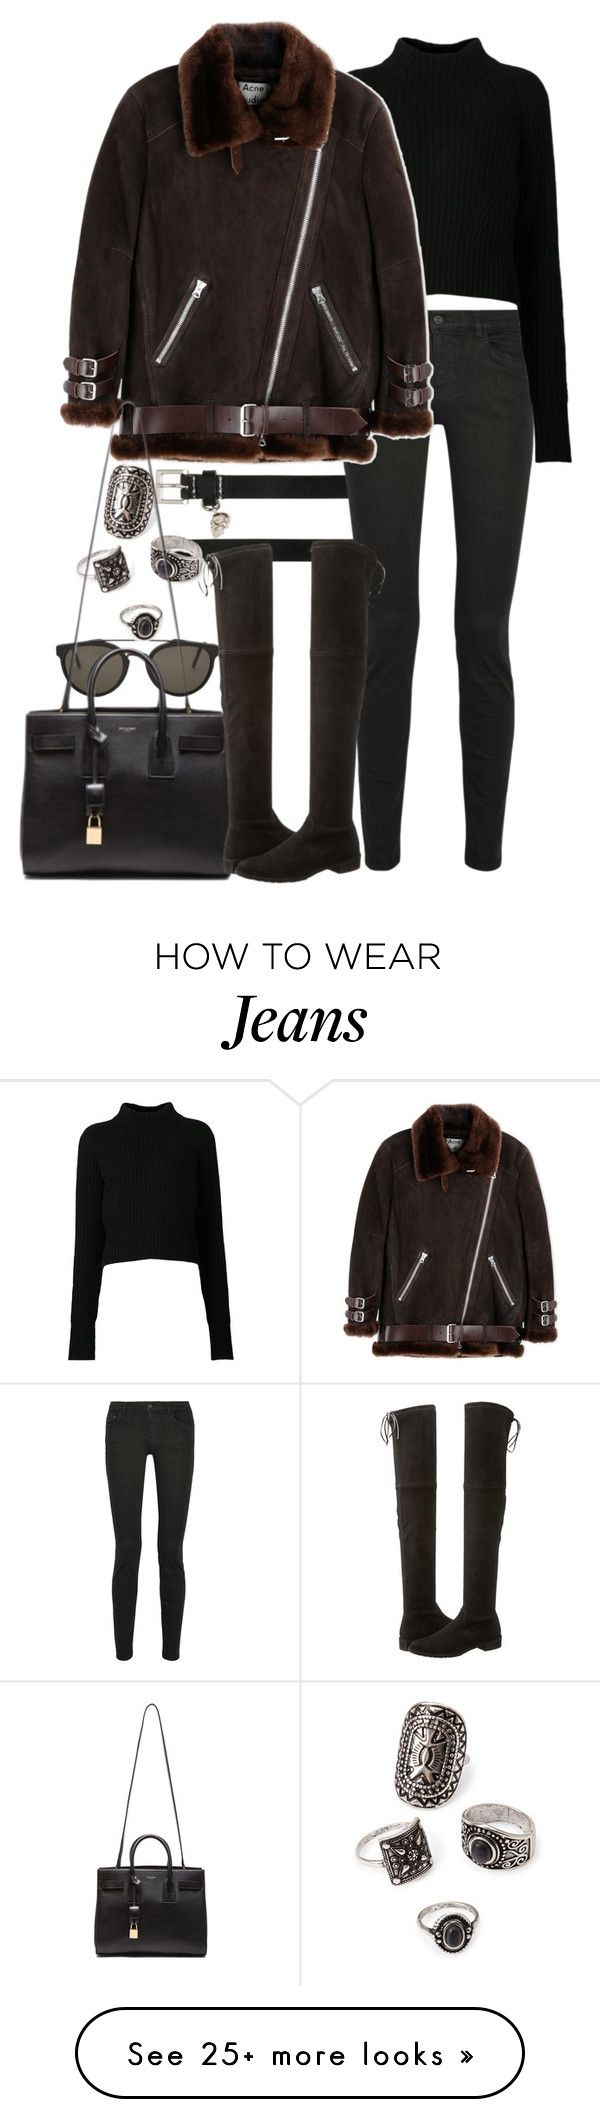 """""""Untitled #8218"""" by nikka-phillips on Polyvore featuring Alexander McQueen, RetroSuperFuture, Proenza Schouler, Acne Studios, Forever 21, Yves Saint Laurent and Stuart Weitzman"""